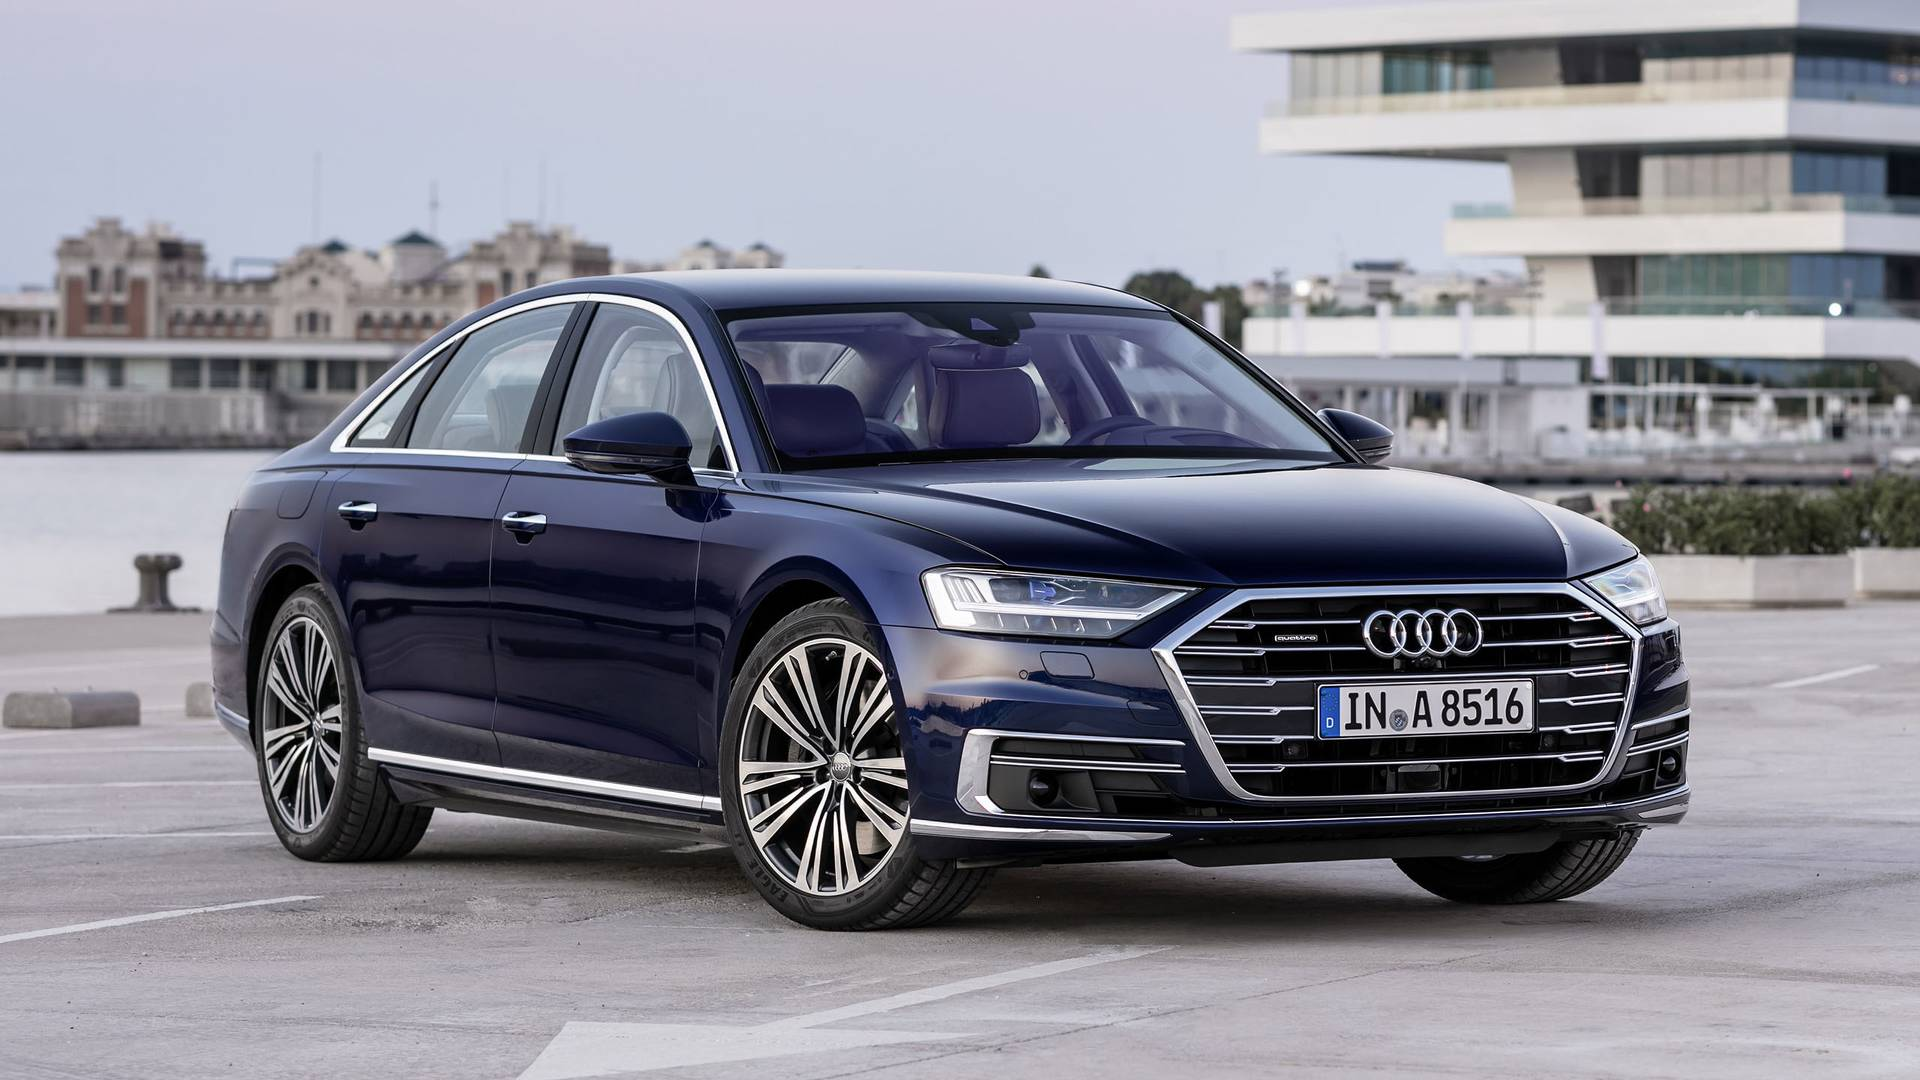 Downsizing Strikes Again New A Is The Last Audi With W Engine - Audi a8 w12